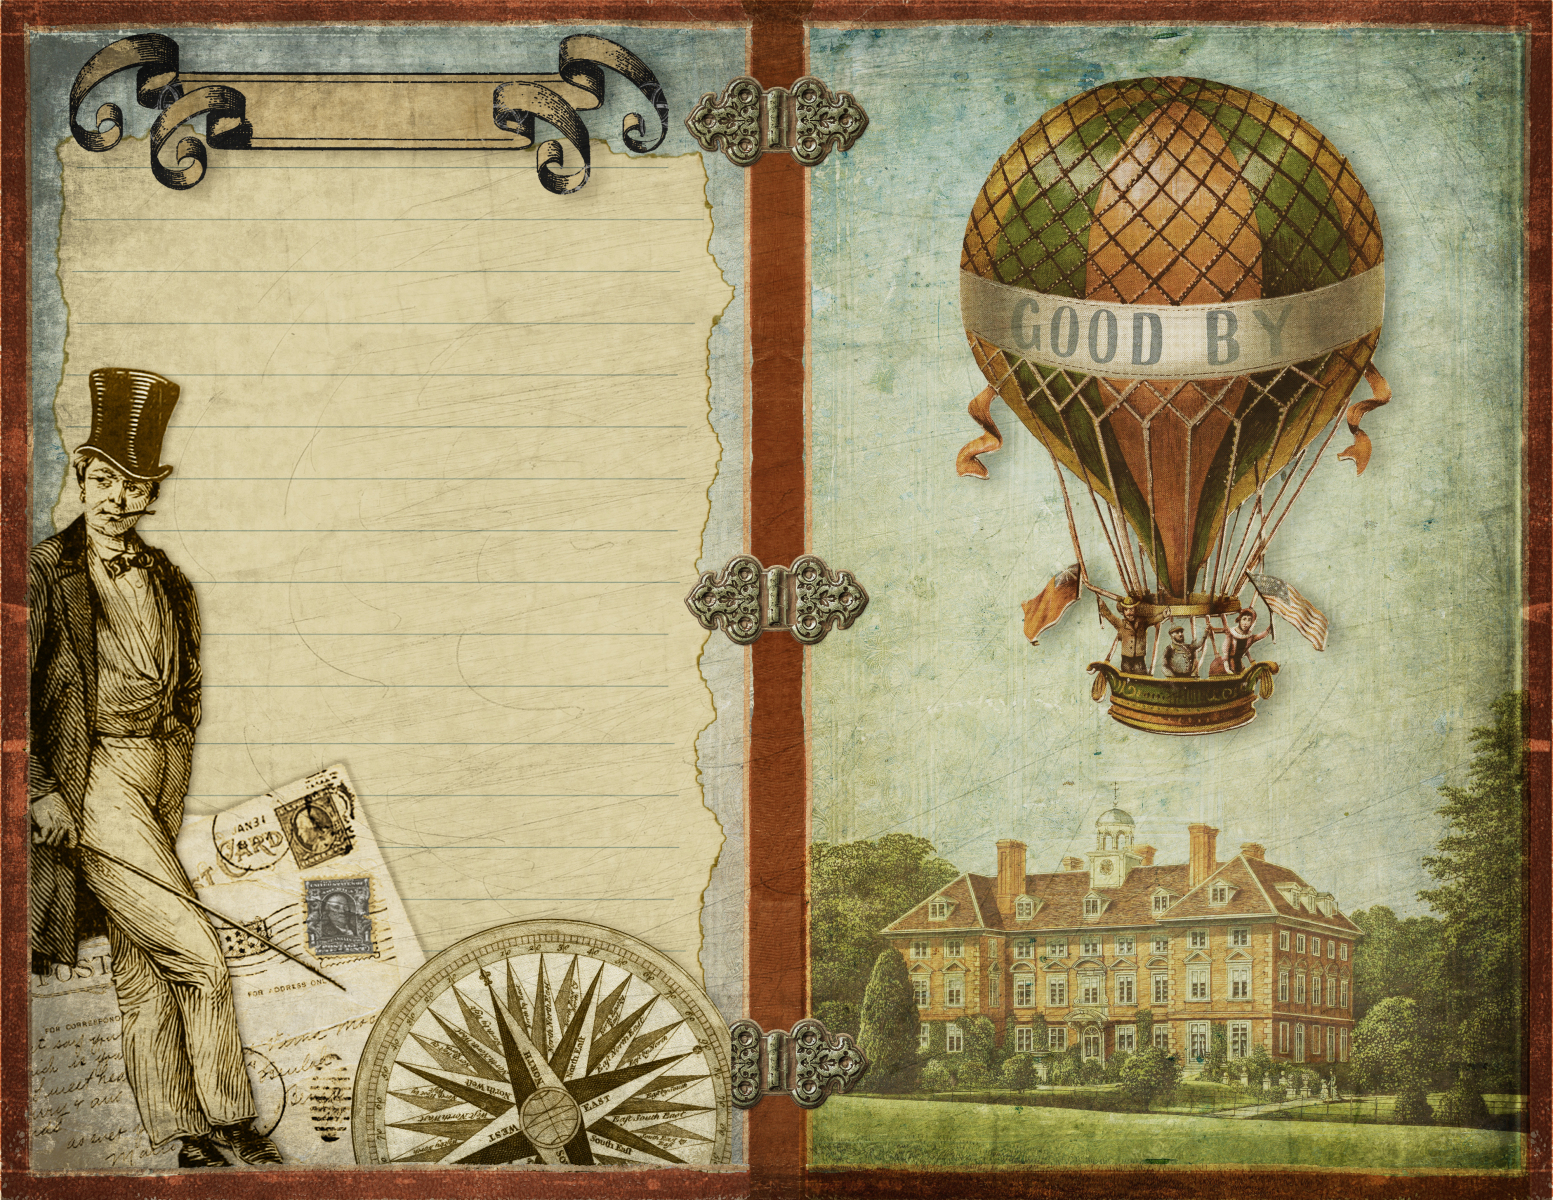 Junk-Journal-Reisen -im-Heissluftballon- Good bye